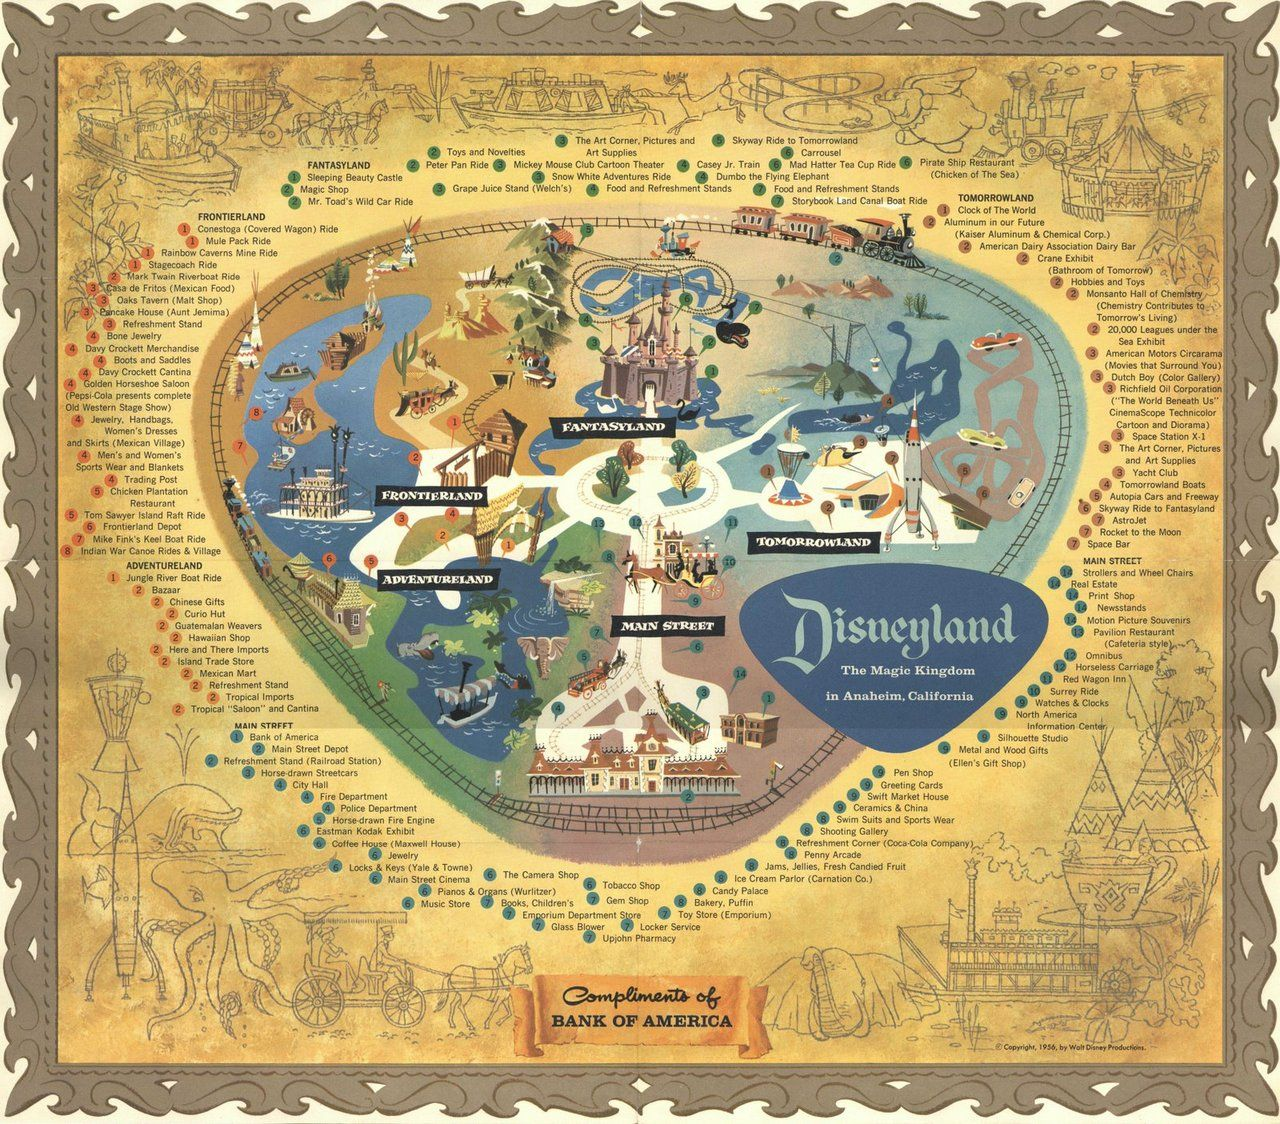 1956 disneyland map compliments of bank of america some say you 1956 disneyland map compliments of bank of america some say you had to go gumiabroncs Image collections